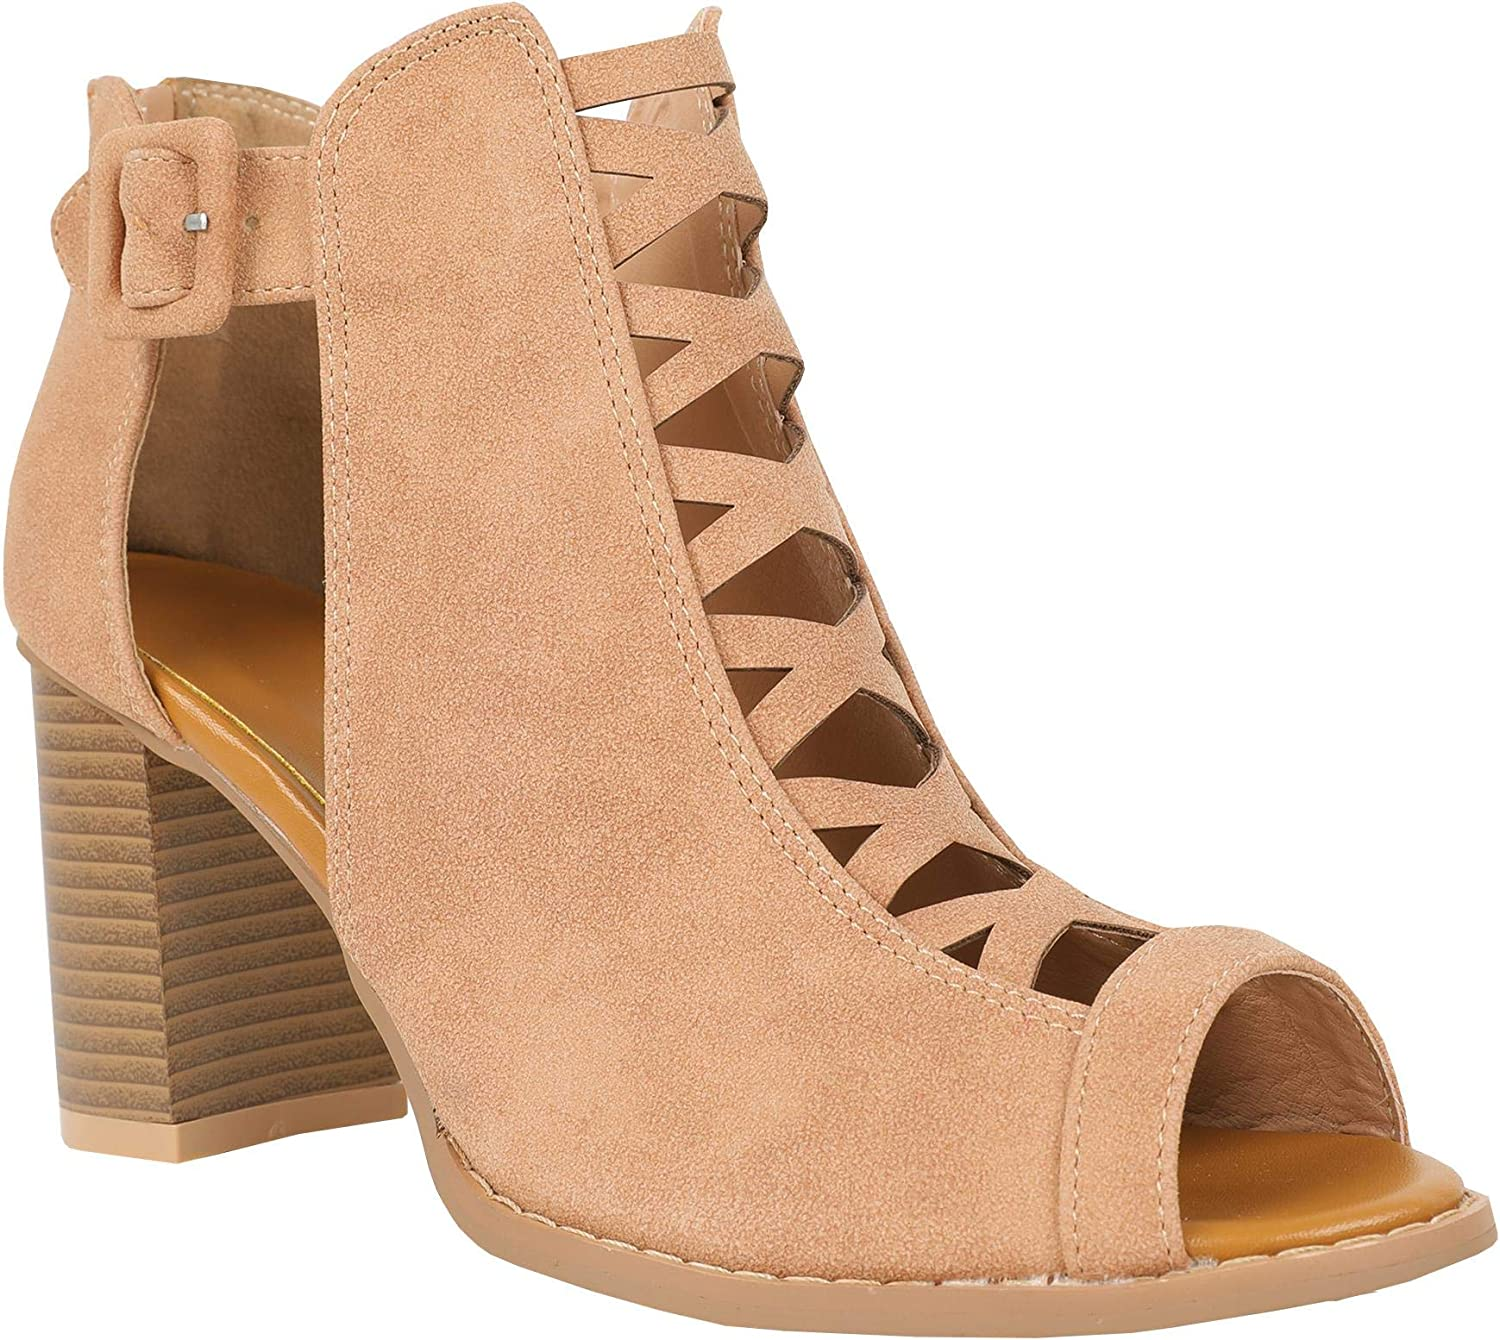 Syktkmx Womens Cutout Open Toe Sandals Chunky Block High Heel Lace Up Booties